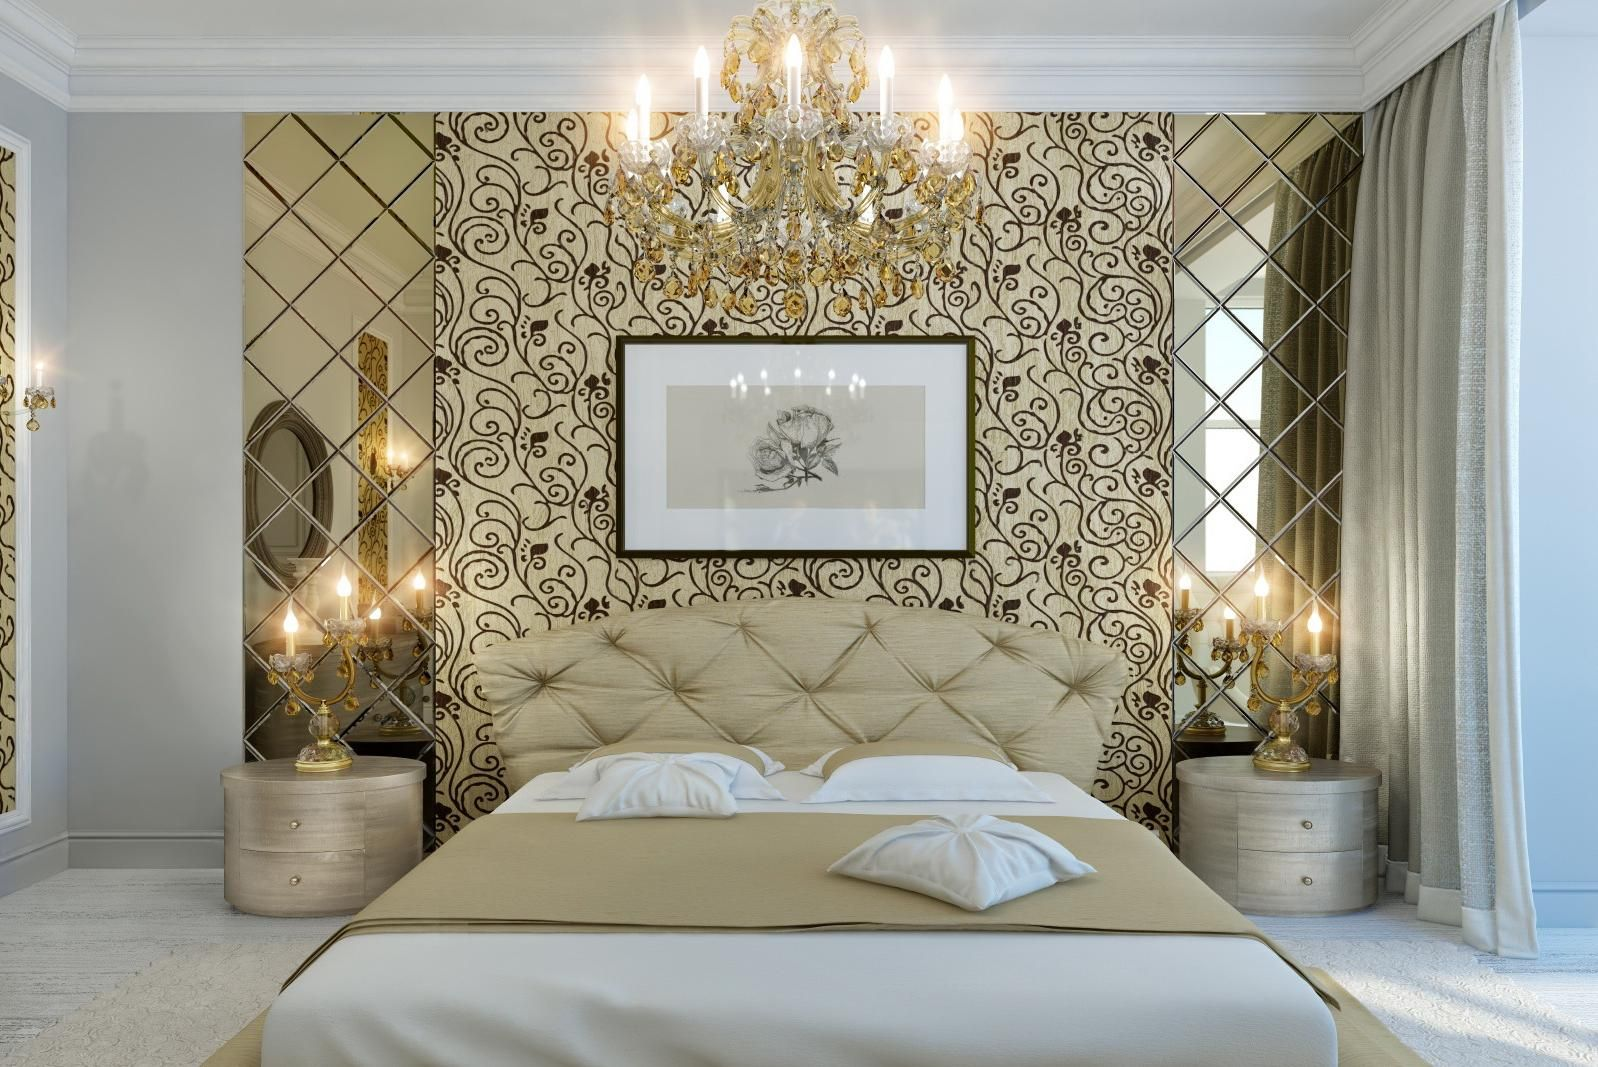 Small Bedroom Gold And White Grey And Purple Bedroom Ideas For Women Fence Living Tropical Large Gold Schlafzimmer Damenschlafzimmer Luxusschlafzimmer